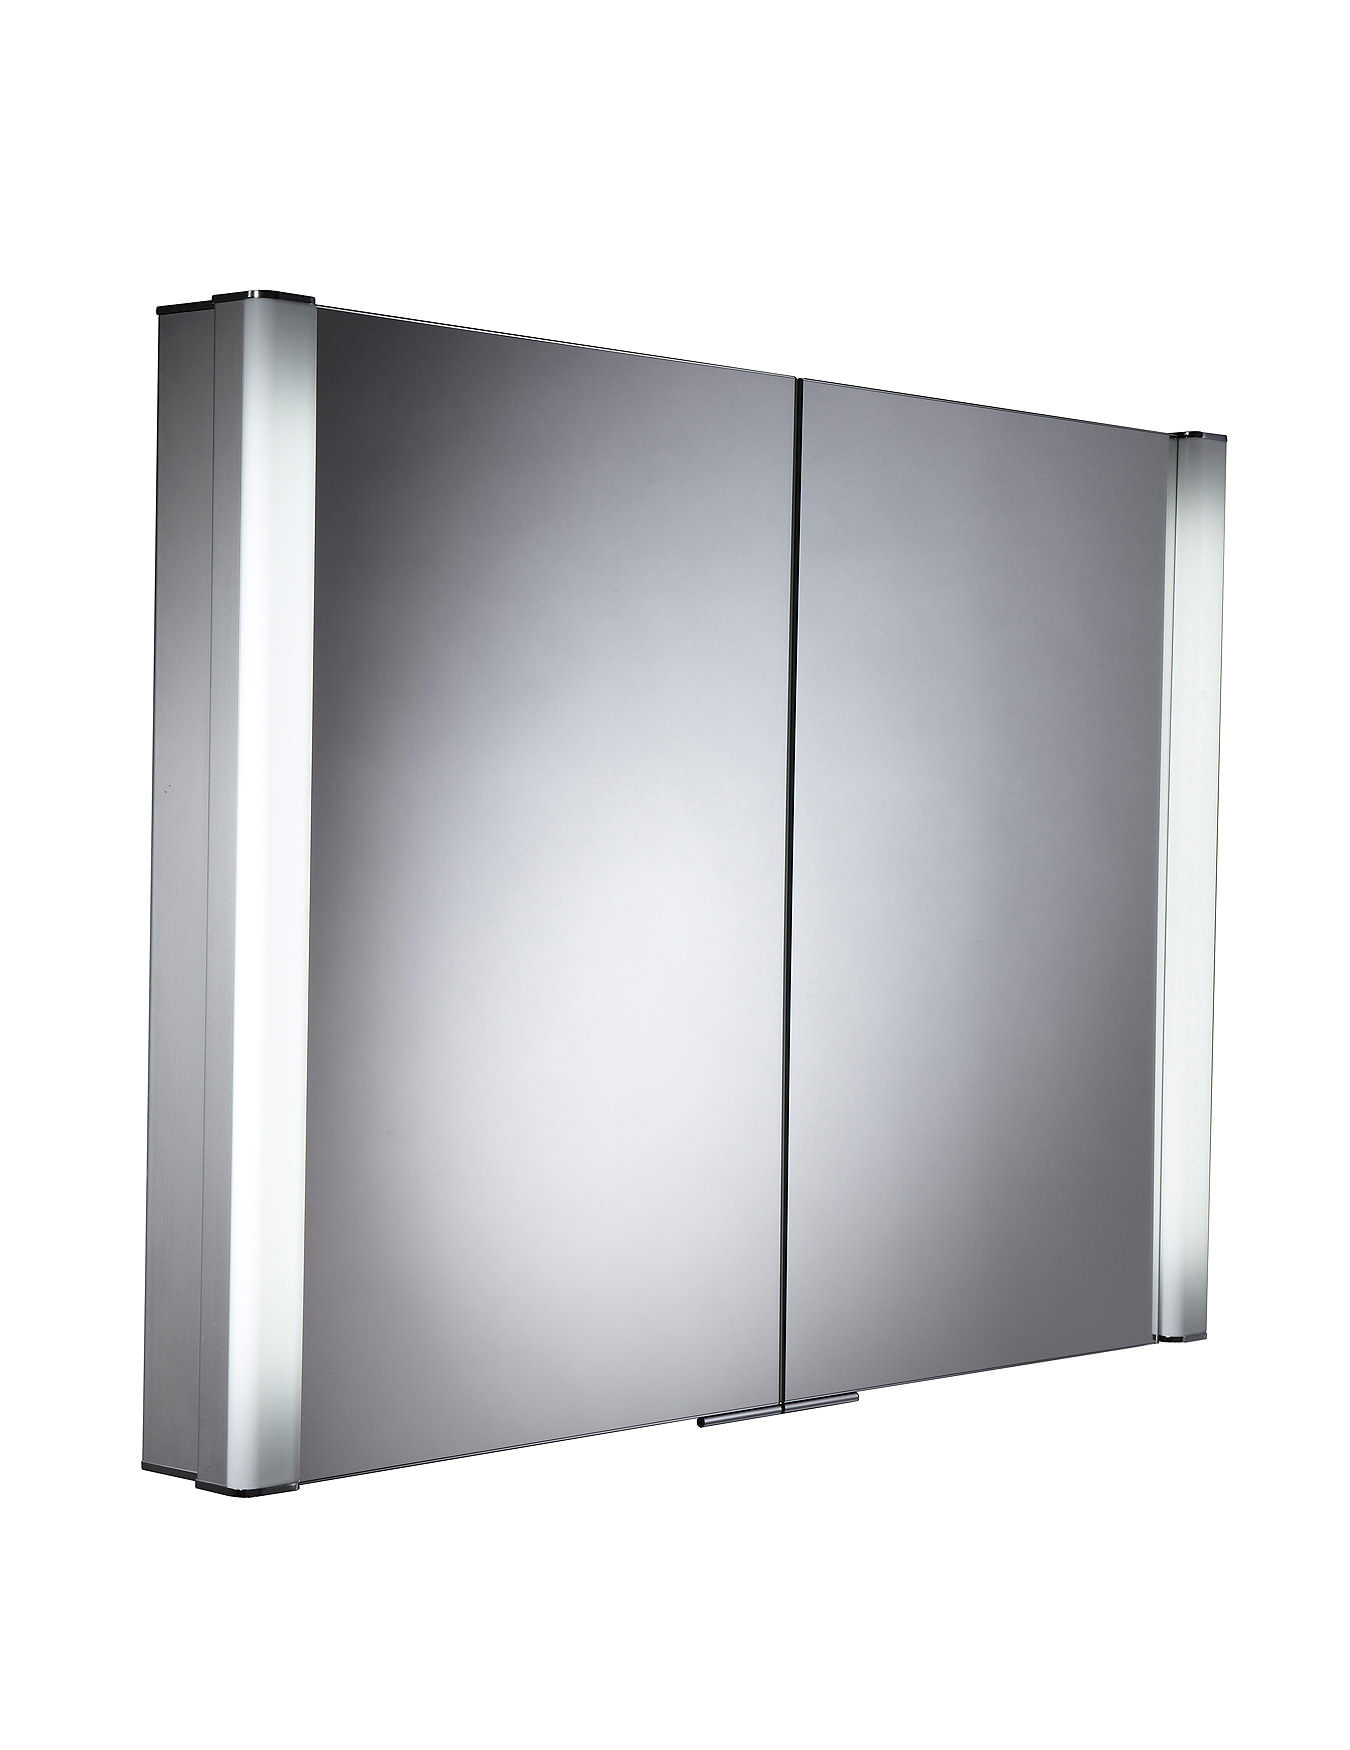 Roper rhodes perception recessed illuminated cabinet for Bathroom mirror cabinets 900mm and 1000mm